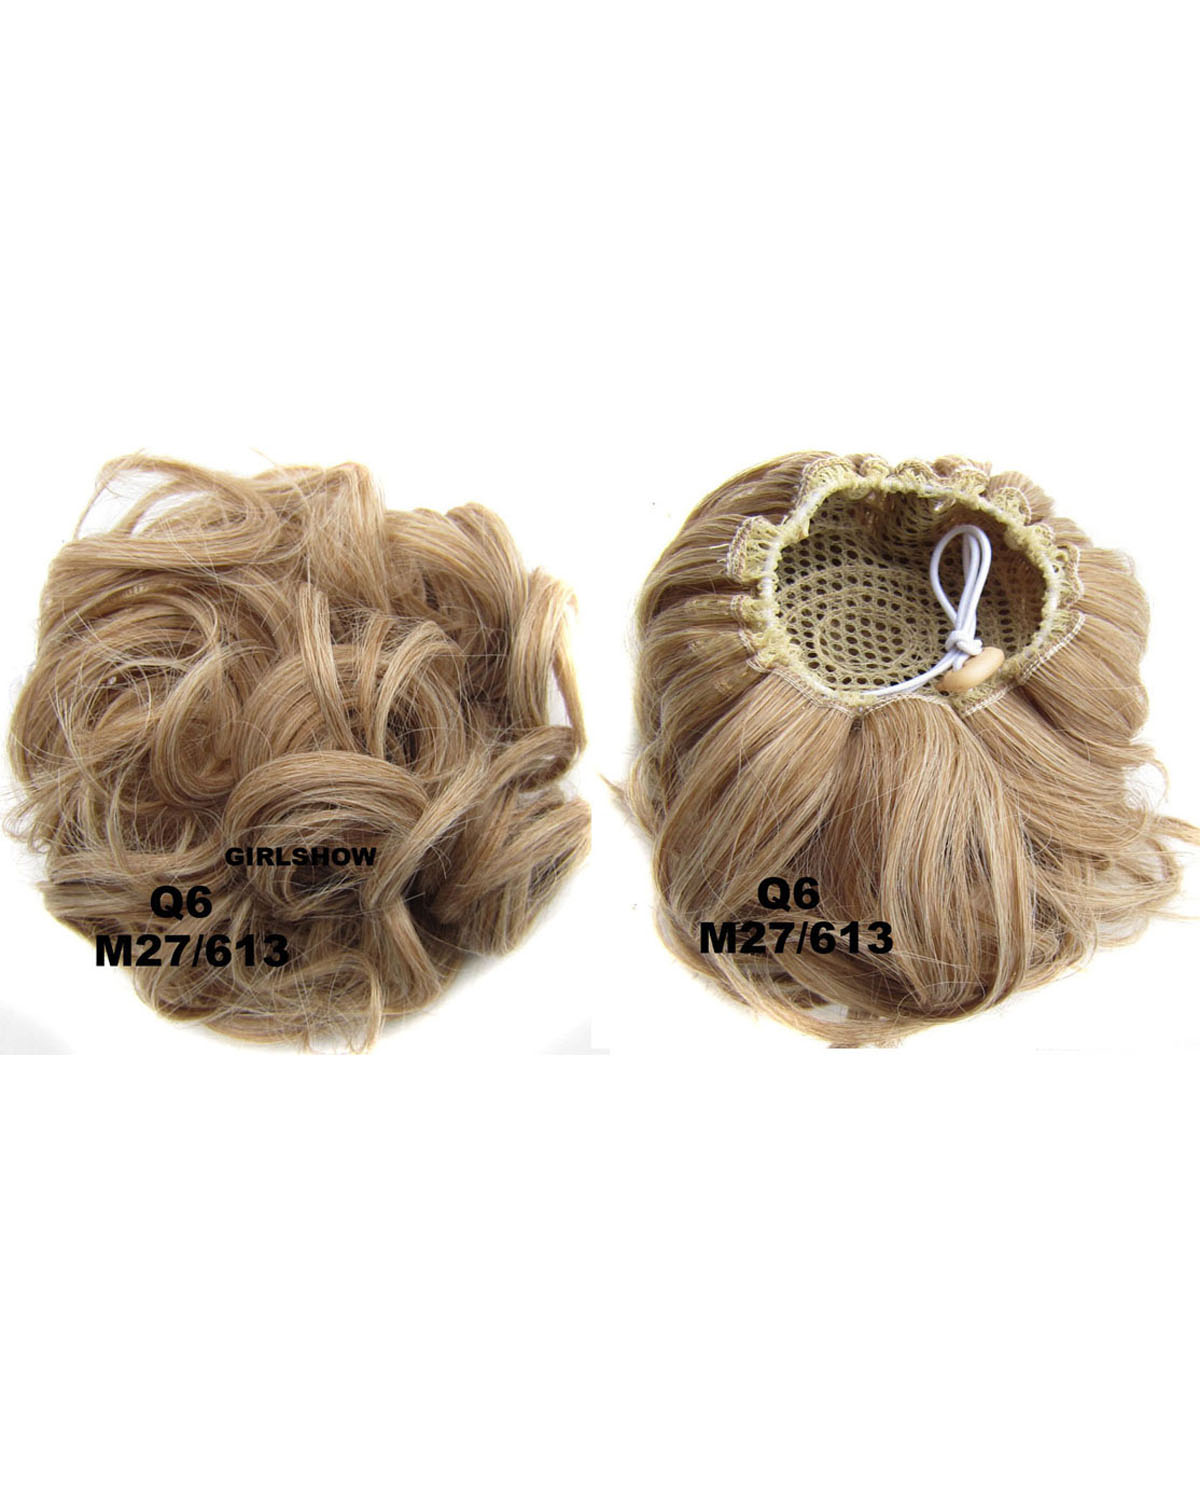 Ladies Newly Great  Curly and Short Hair Buns Drawstring Synthetic Hair Extension Bride Scrunchies M27/613